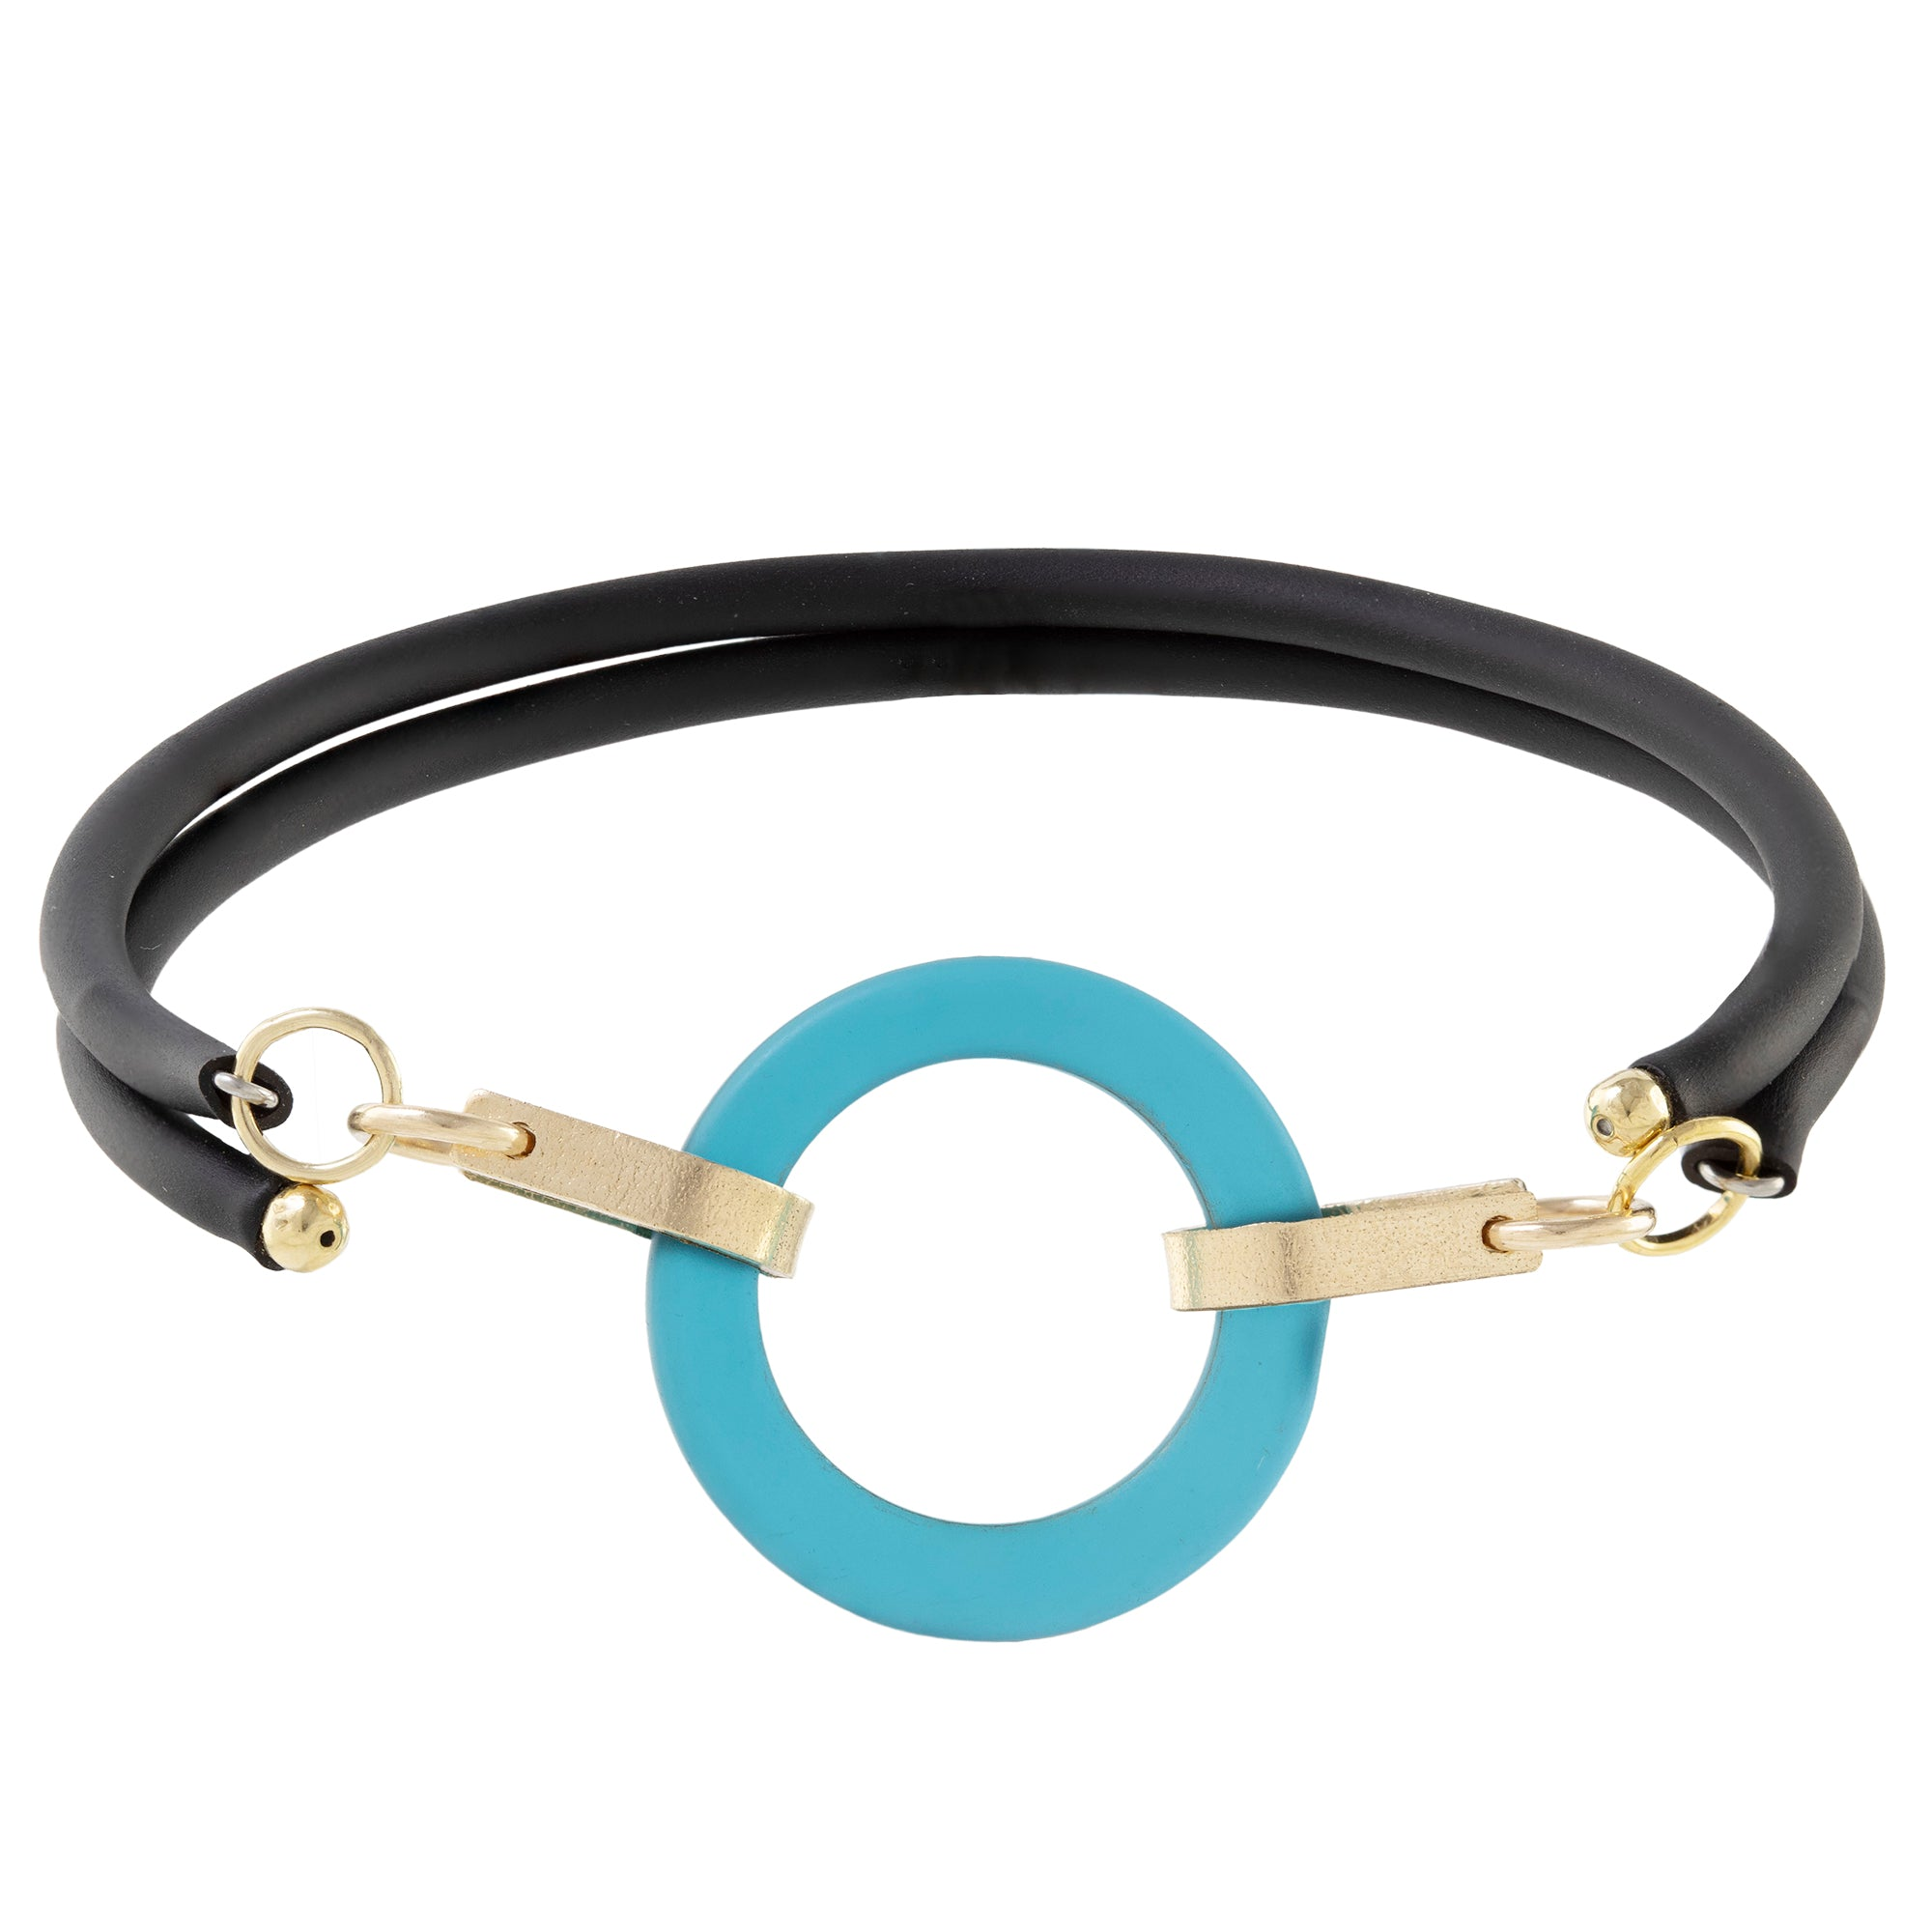 Teal Peacock Blue Recycled Glass Open Circle and 14K Gold Fill Strap Style Wrap Bracelet